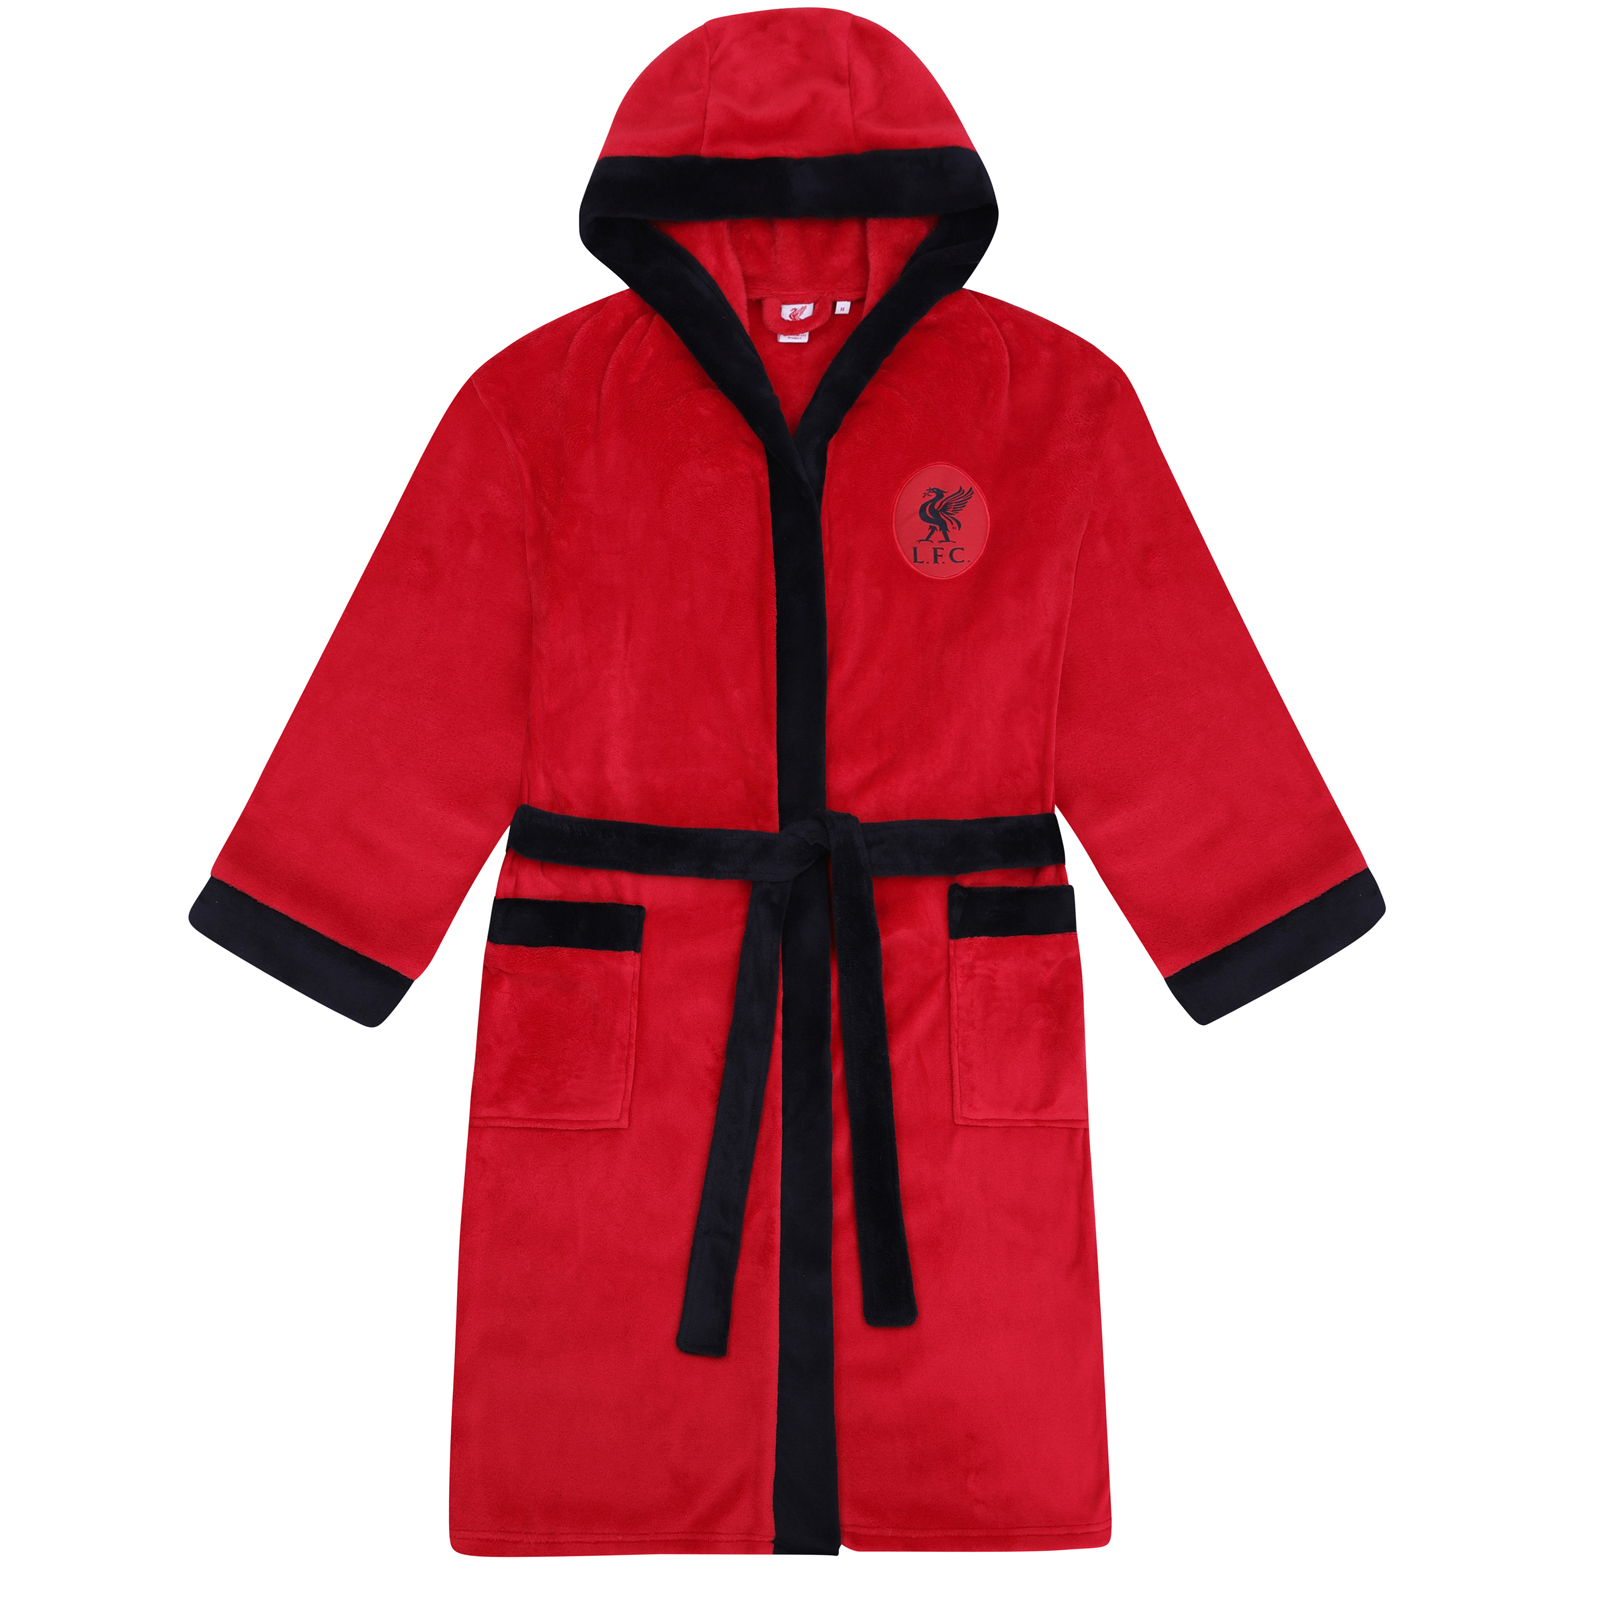 Chelsea FC Official Football Gift Boys Quilted Hooded Winter Jacket